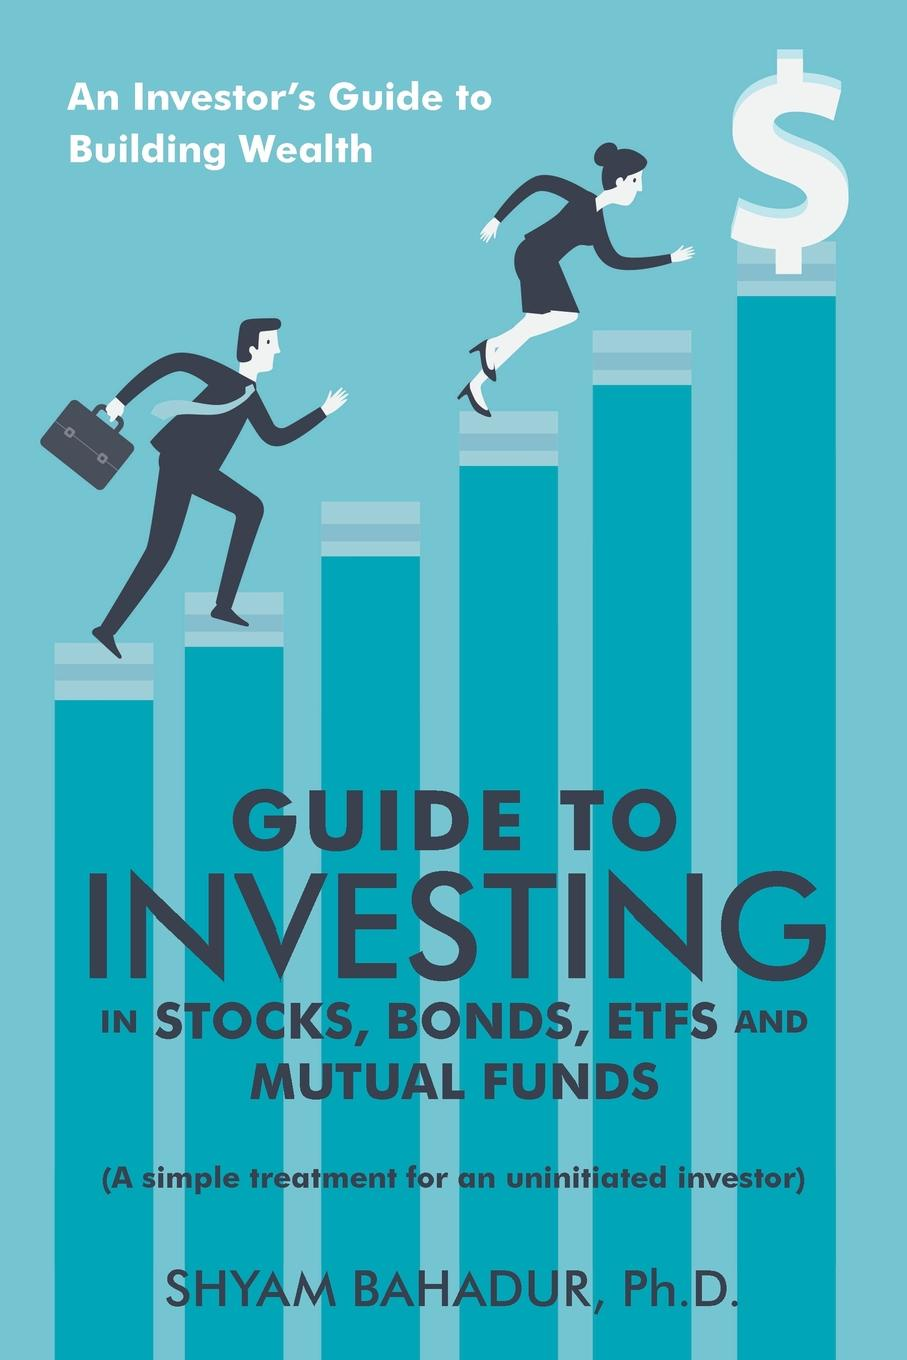 Ph.D. Shyam Bahadur Guide to Investing in Stocks, Bonds, Etfs and Mutual Funds. An Investor'S Guide to Building Wealth jerald pinto e quantitative investment analysis workbook